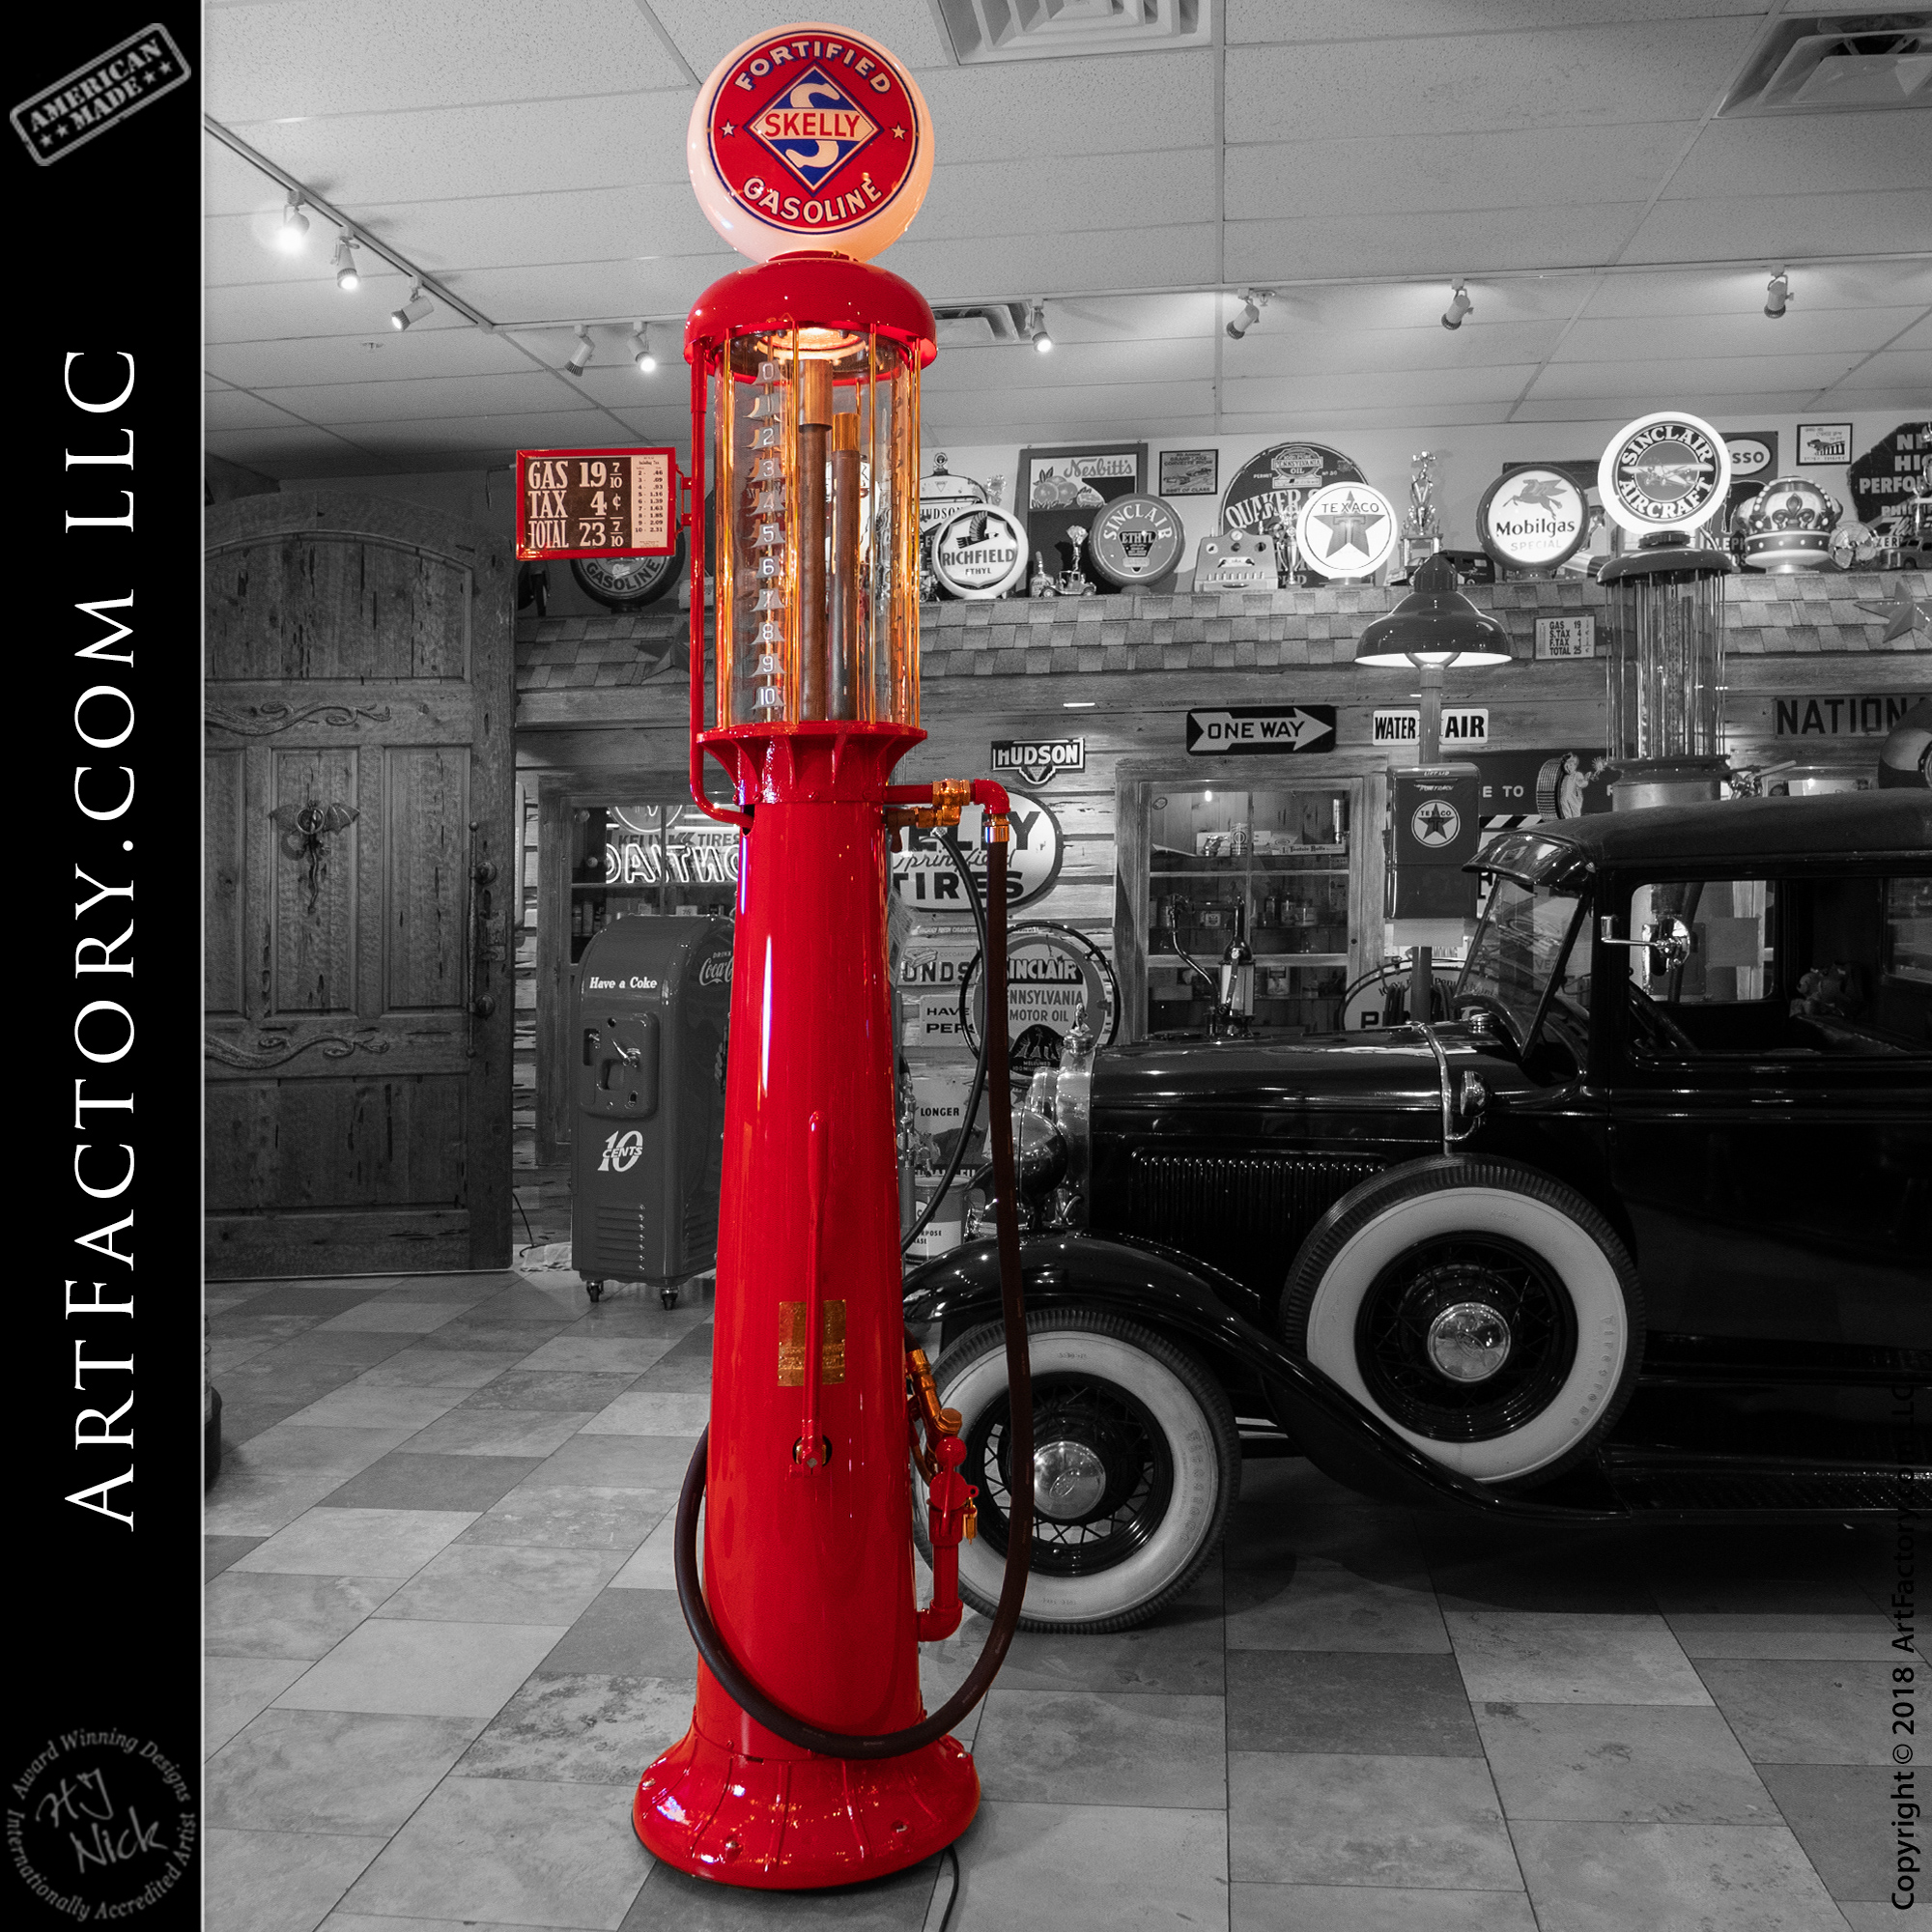 Steve bought a Lubester Oil Cart from us a few months ago. Saw this Texaco air pump that he is interested in: Vintage Restored Texaco Air Pole: With Water Hose & Island Light – AP4214 https://mancave.artfactory.com/product/vintage-restored-texaco-air-pole/